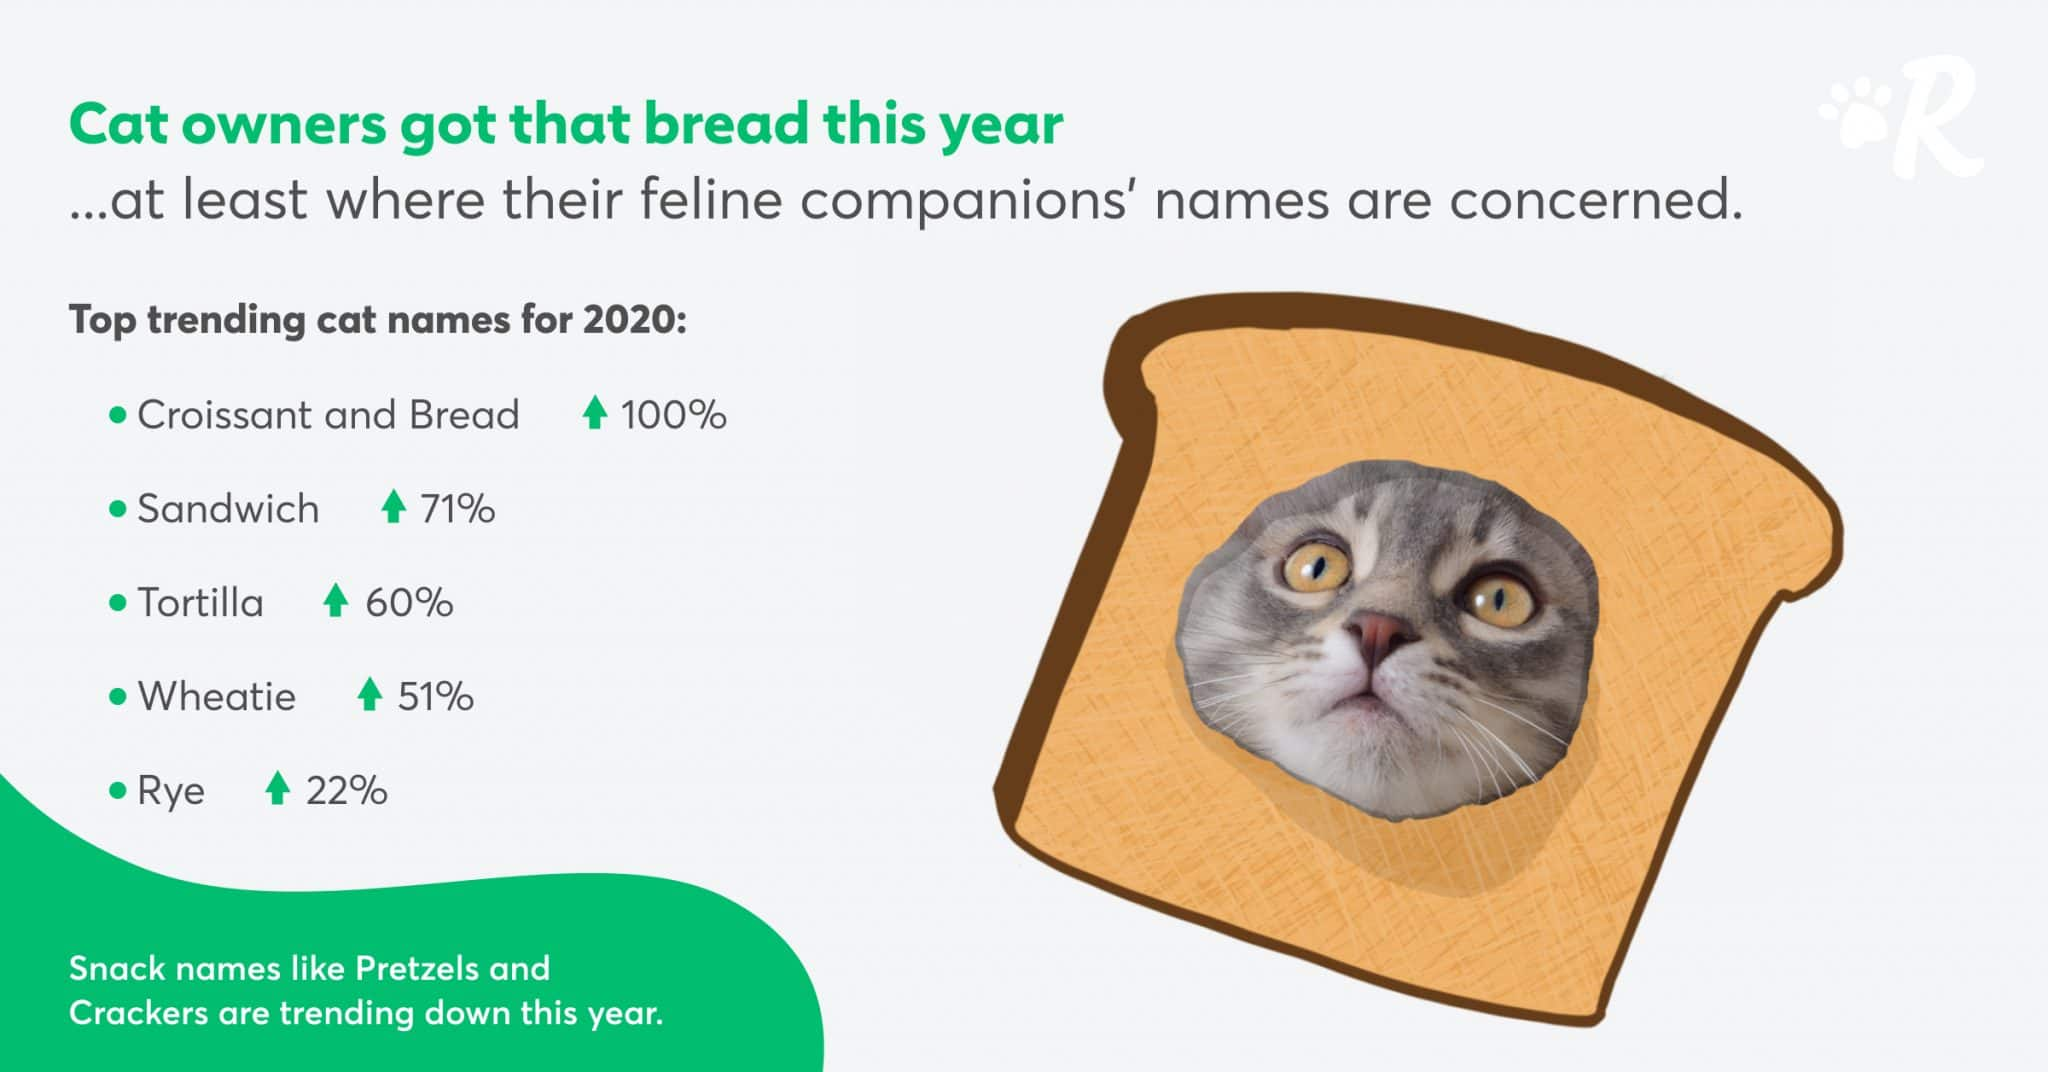 An infographic of the trending cat names in 2020, featuring carb-inspired names